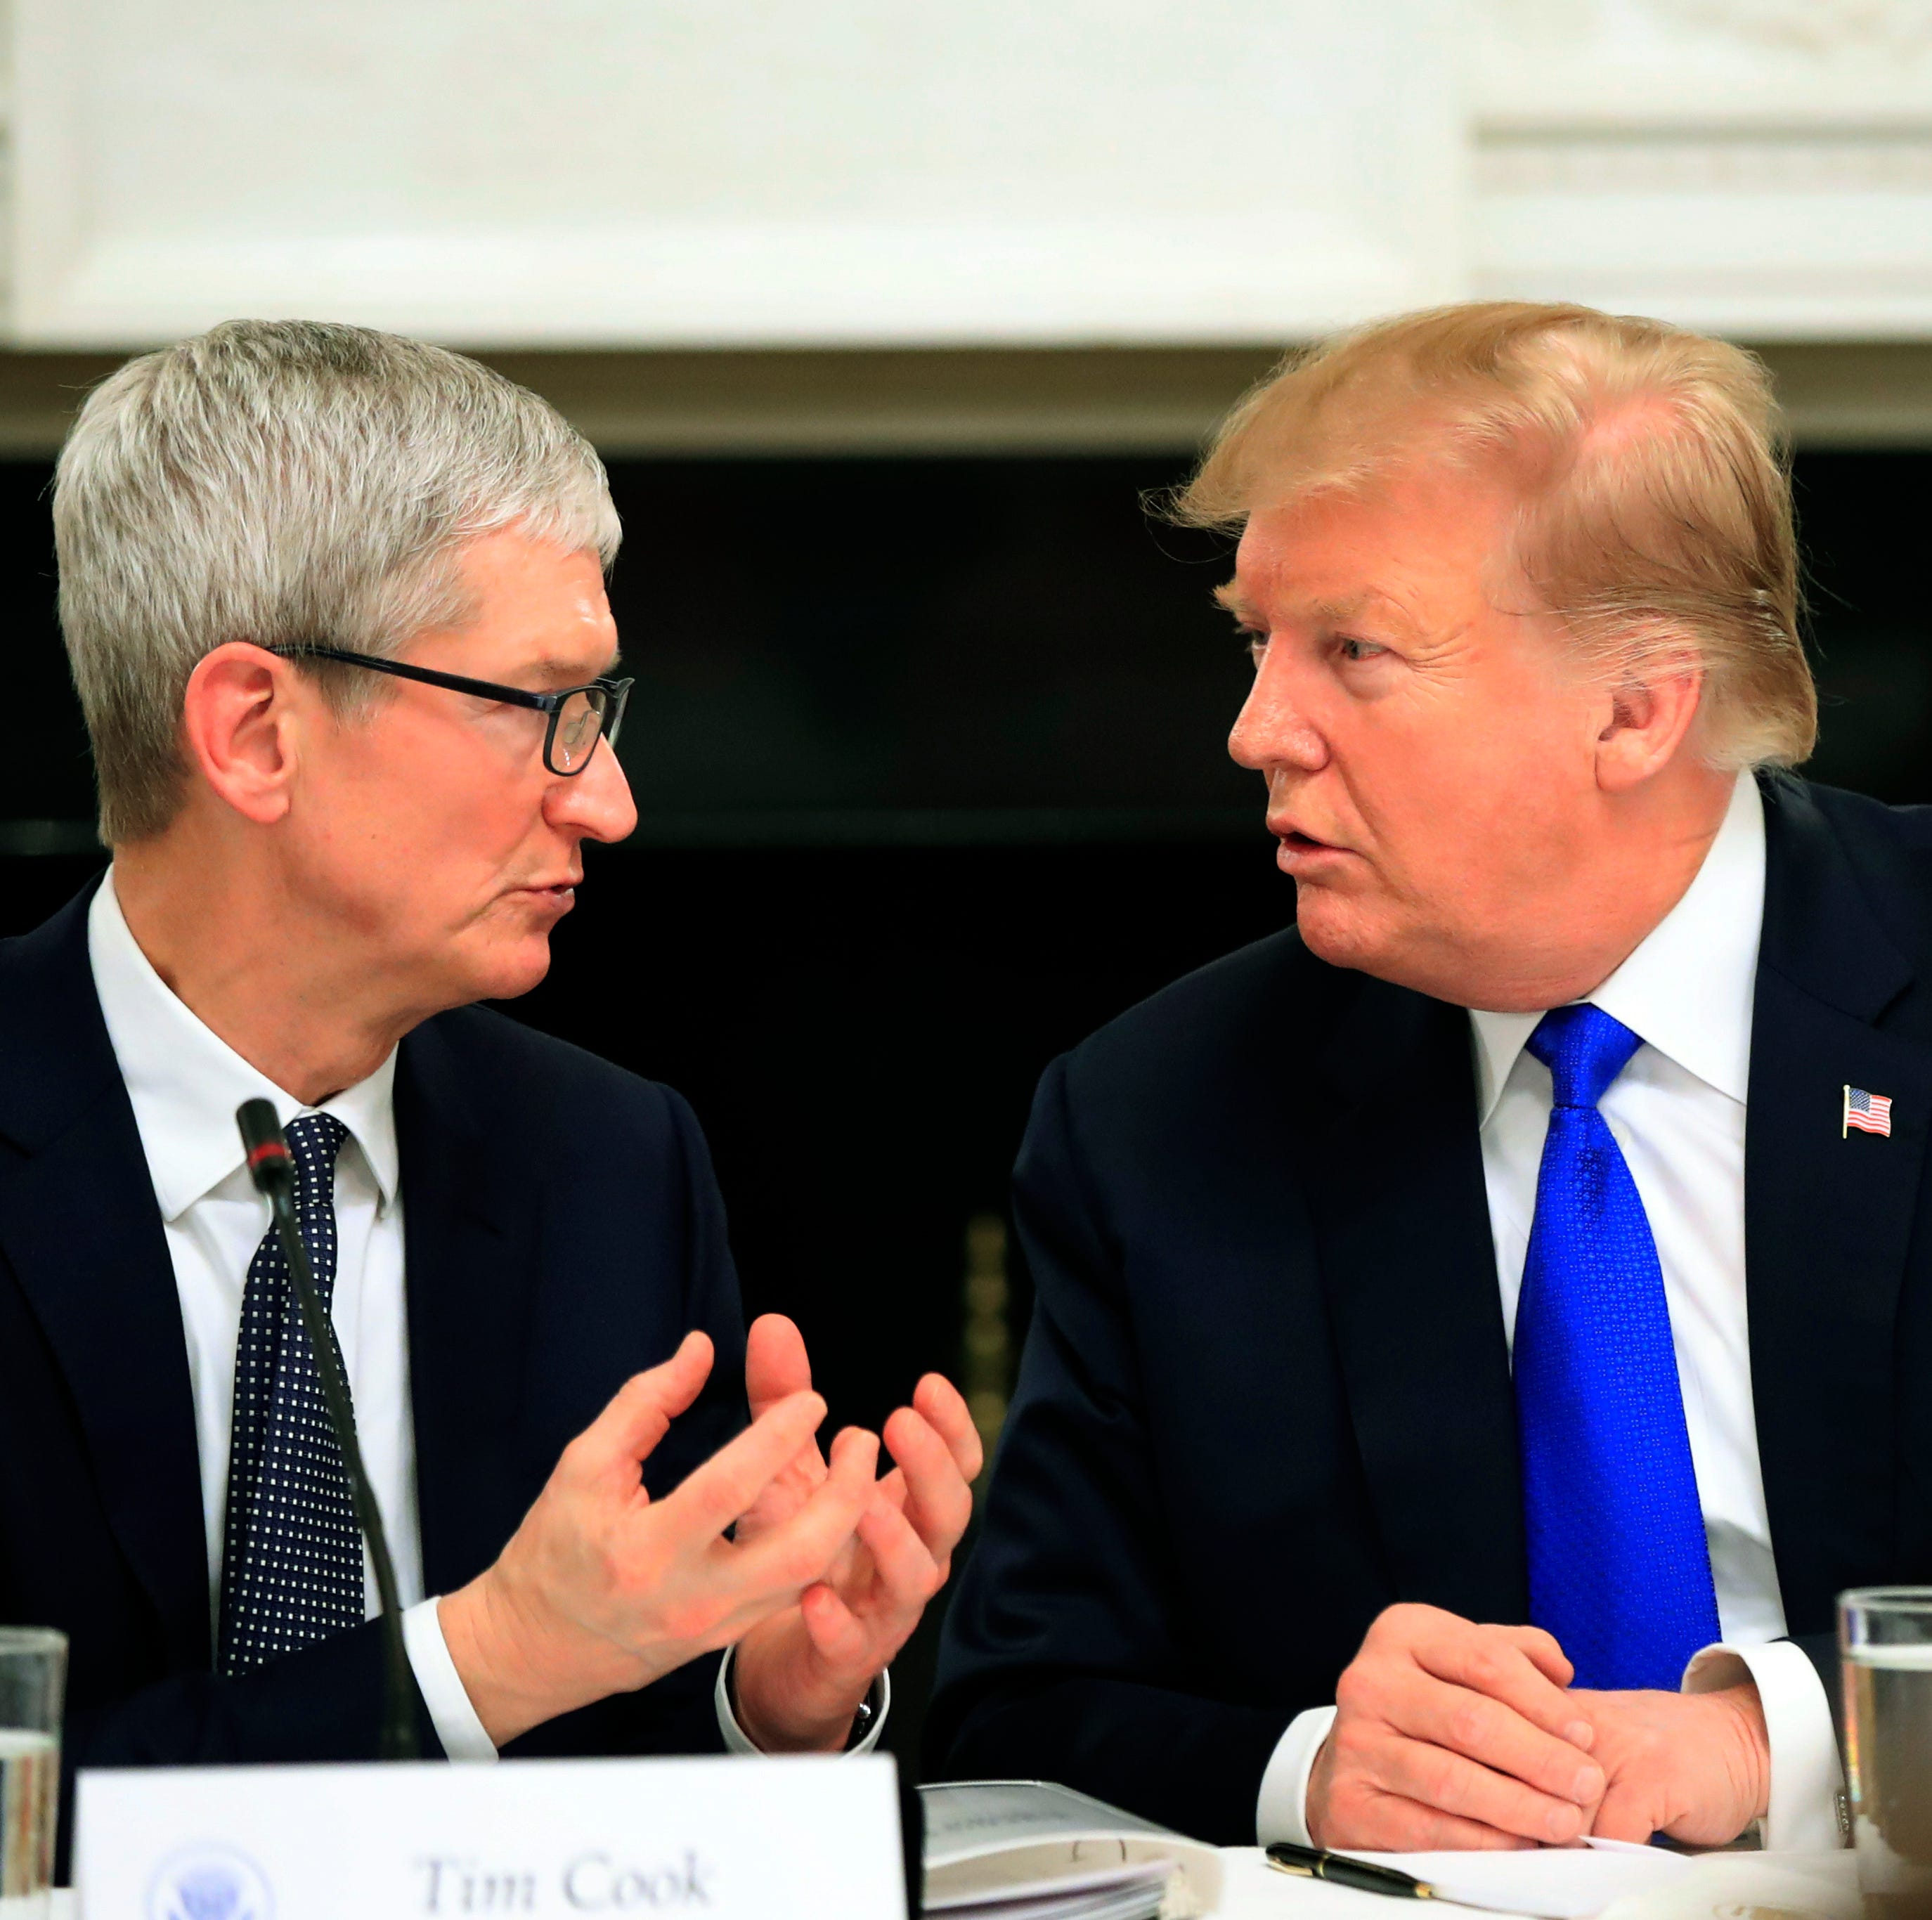 President Donald Trump talks to Apple Inc. CEO Tim Cook during a White House event last week.